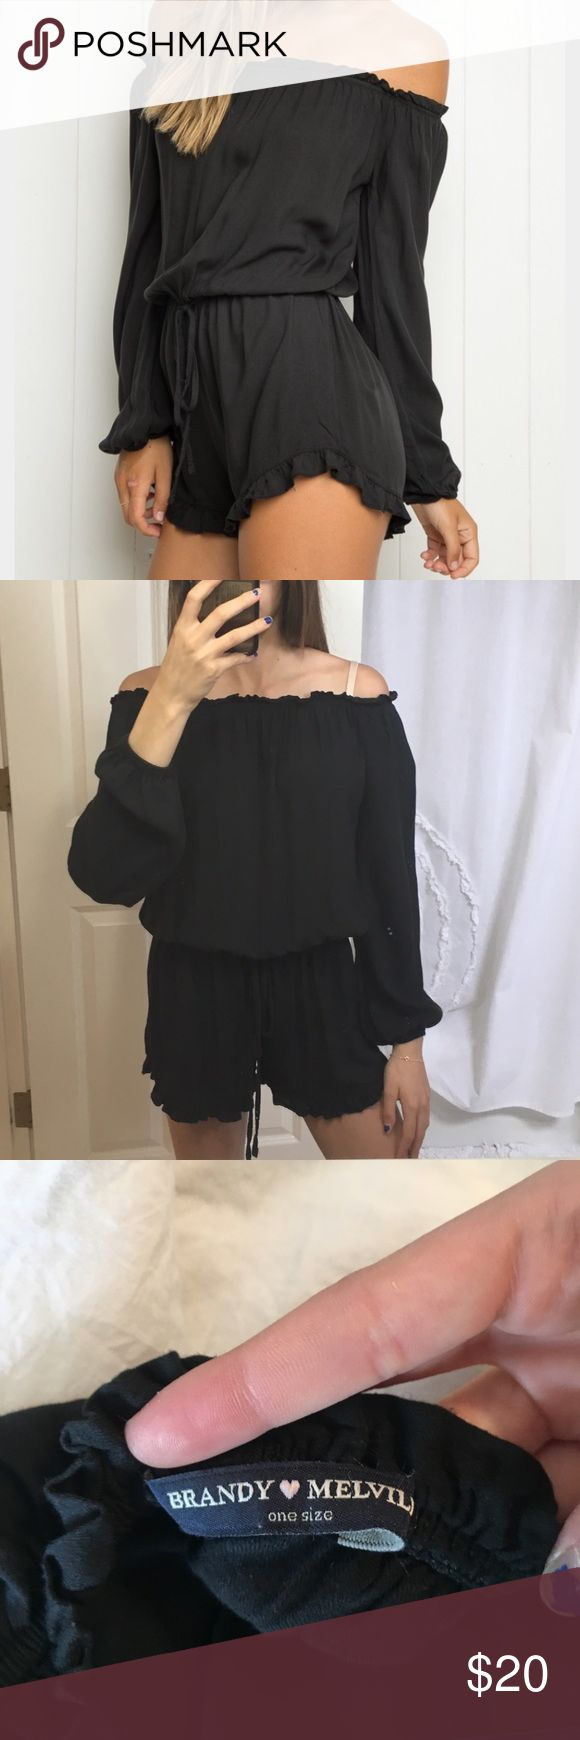 Brandy Melville romper Black Gabriella romper. Only worn once. Super soft. And stretches so it will fit many different sizes. Brandy Melville Pants Jumpsuits & Rompers